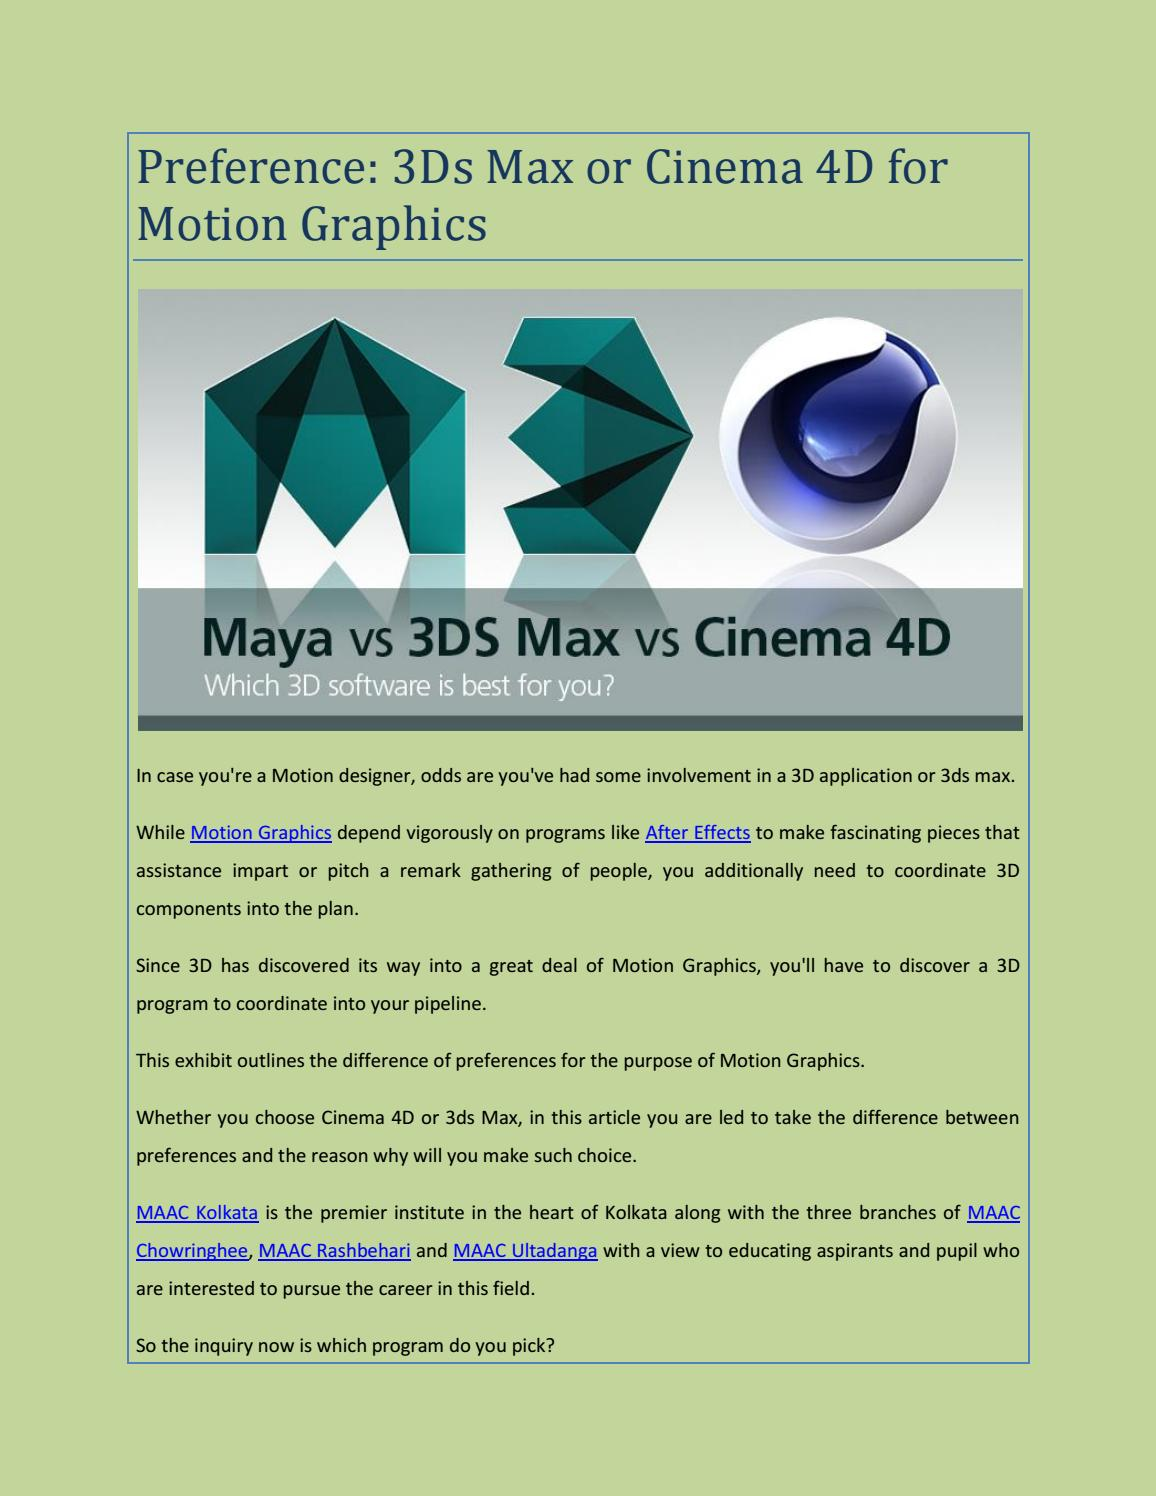 4D Max Cinema preference: 3ds max or cinema 4d for motion graphicsmaac